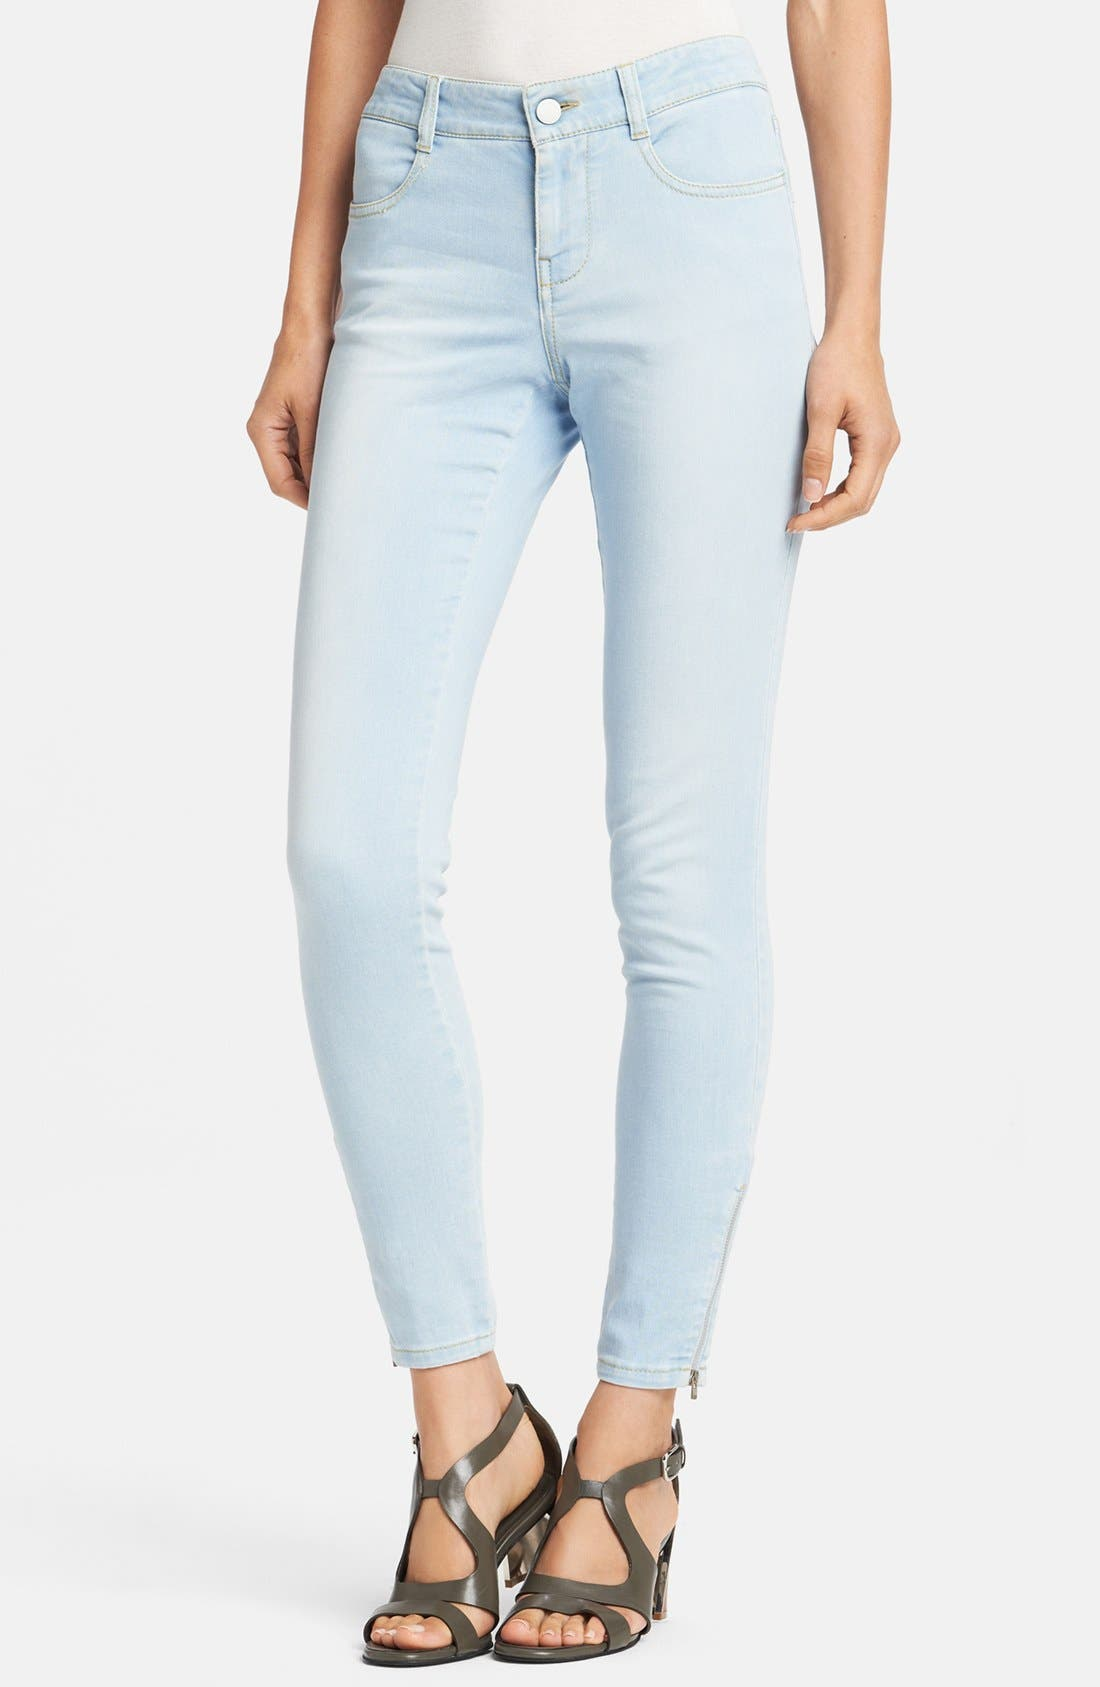 Alternate Image 1 Selected - Stella McCartney 'Jessica' Skinny Ankle Zip Jeans